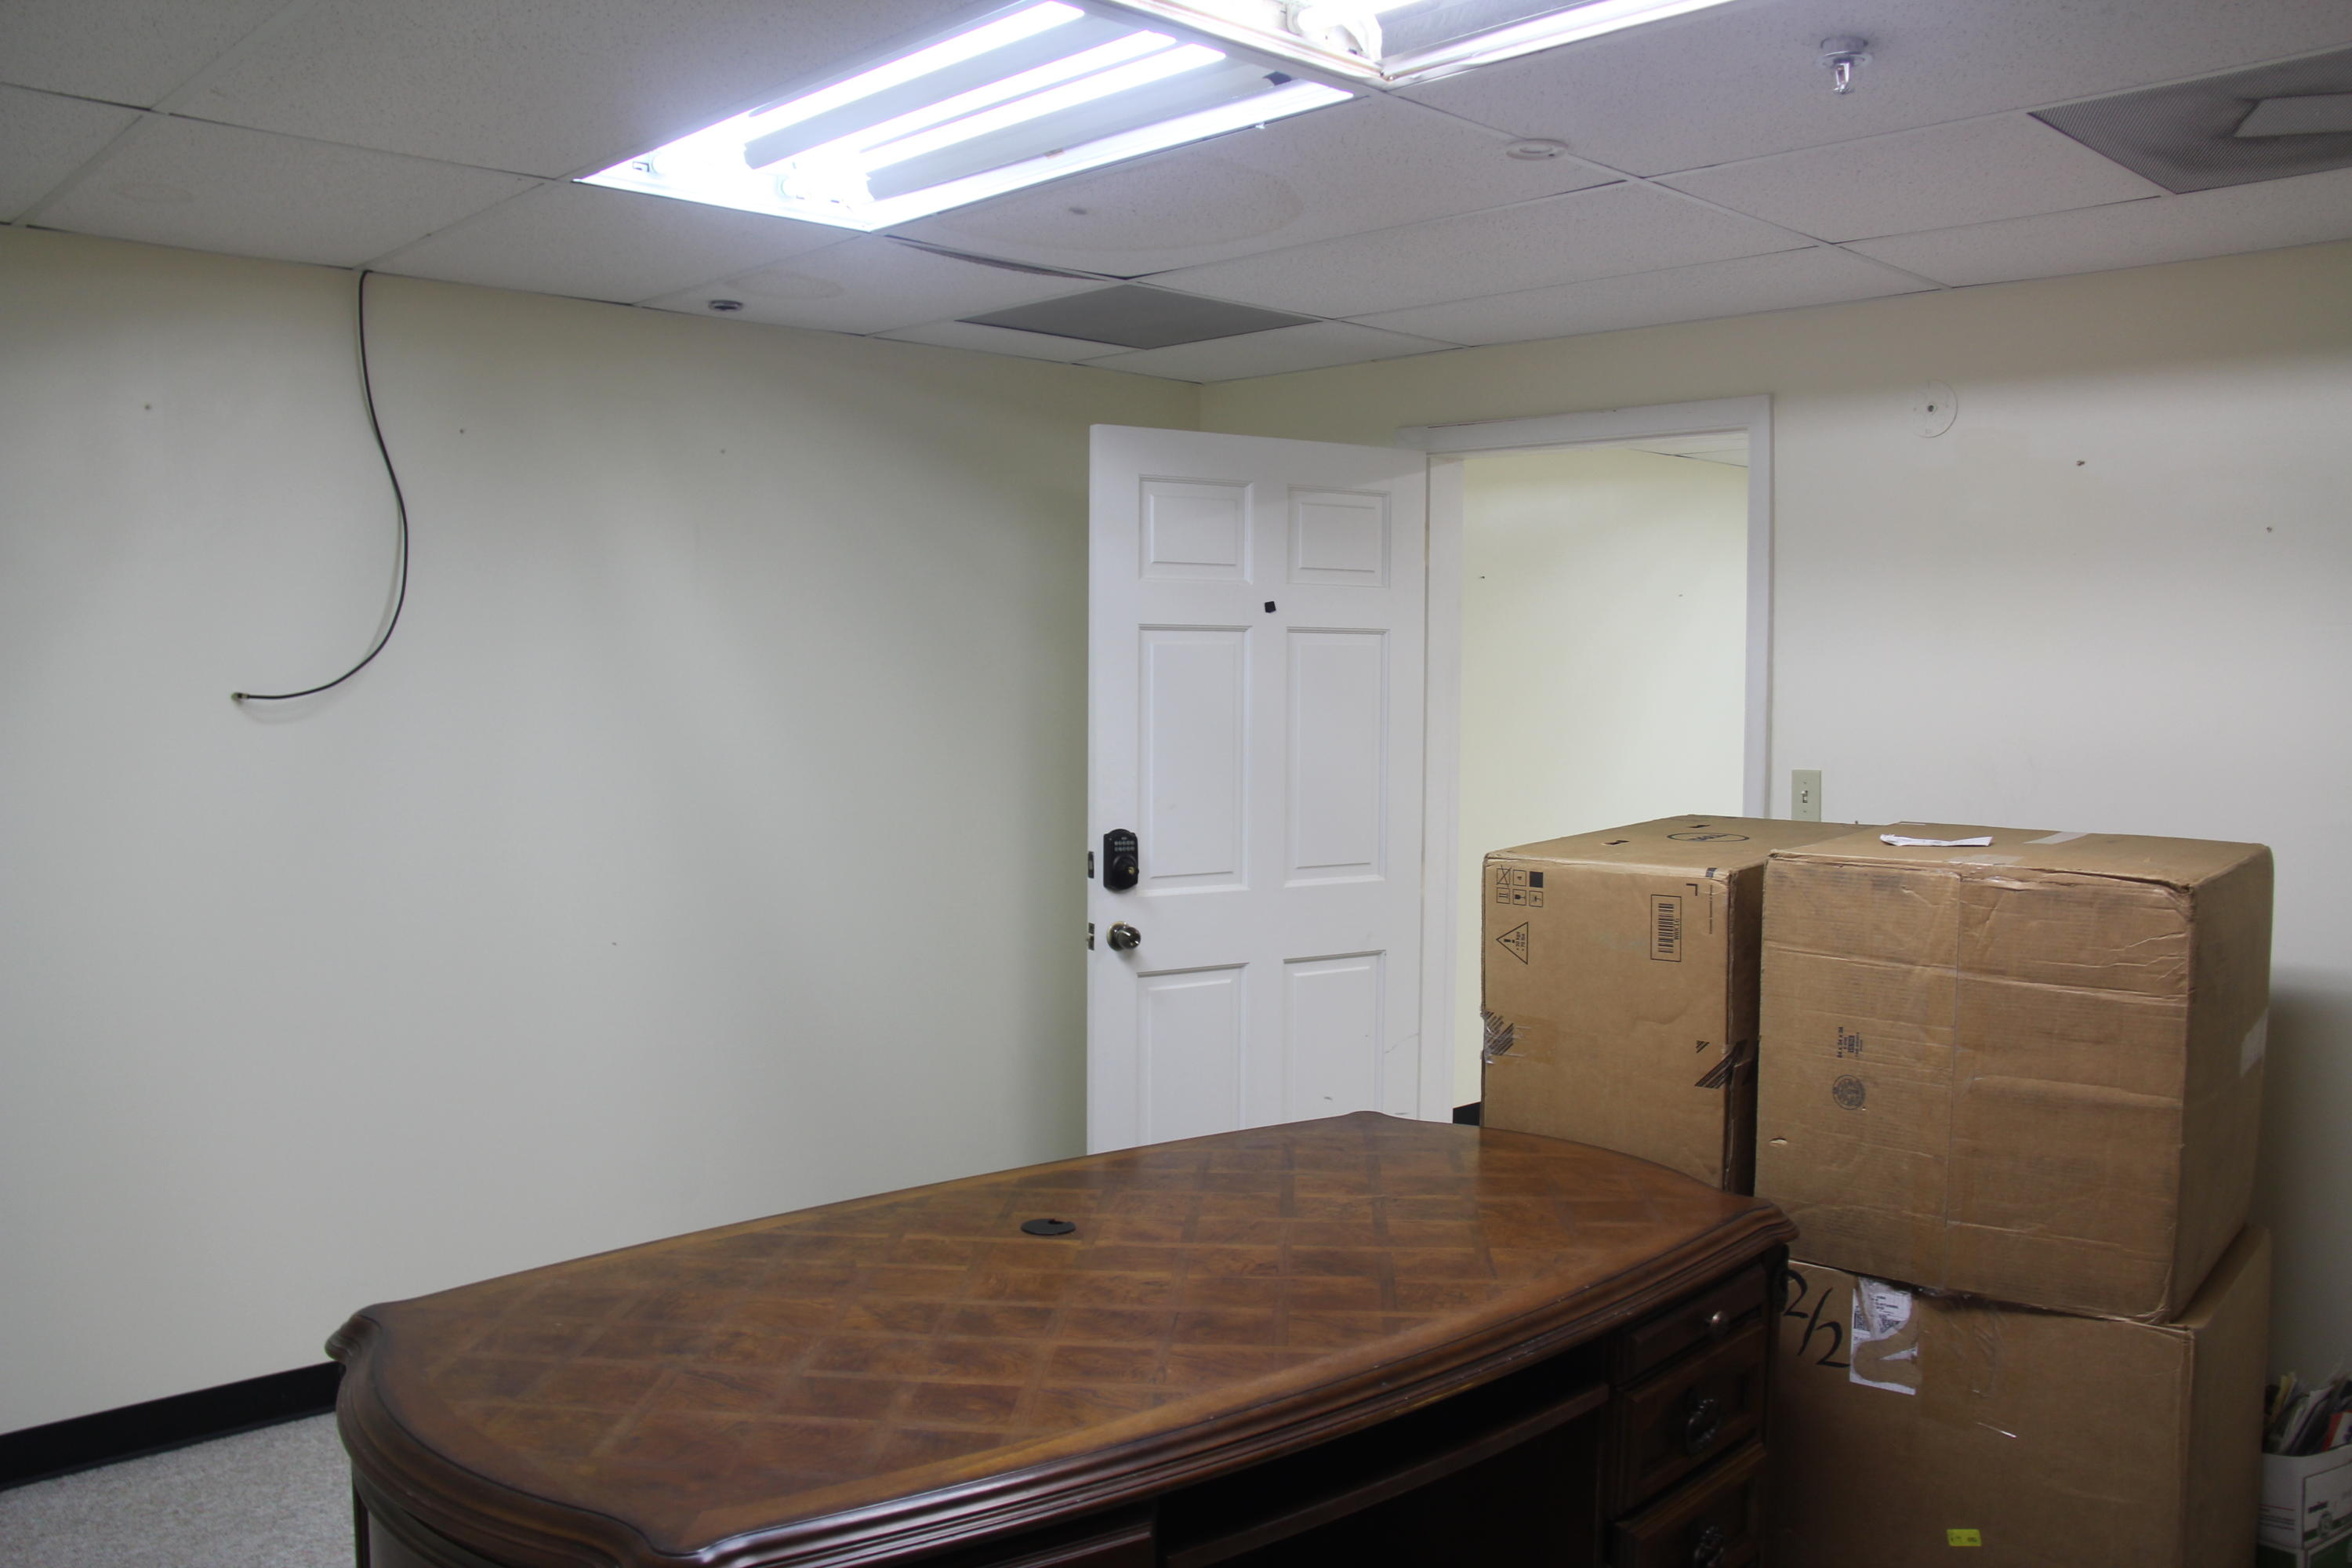 Commercial for Rent at 9361 Thomas NEW 9361 Thomas NEW St Thomas, Virgin Islands 00802 United States Virgin Islands